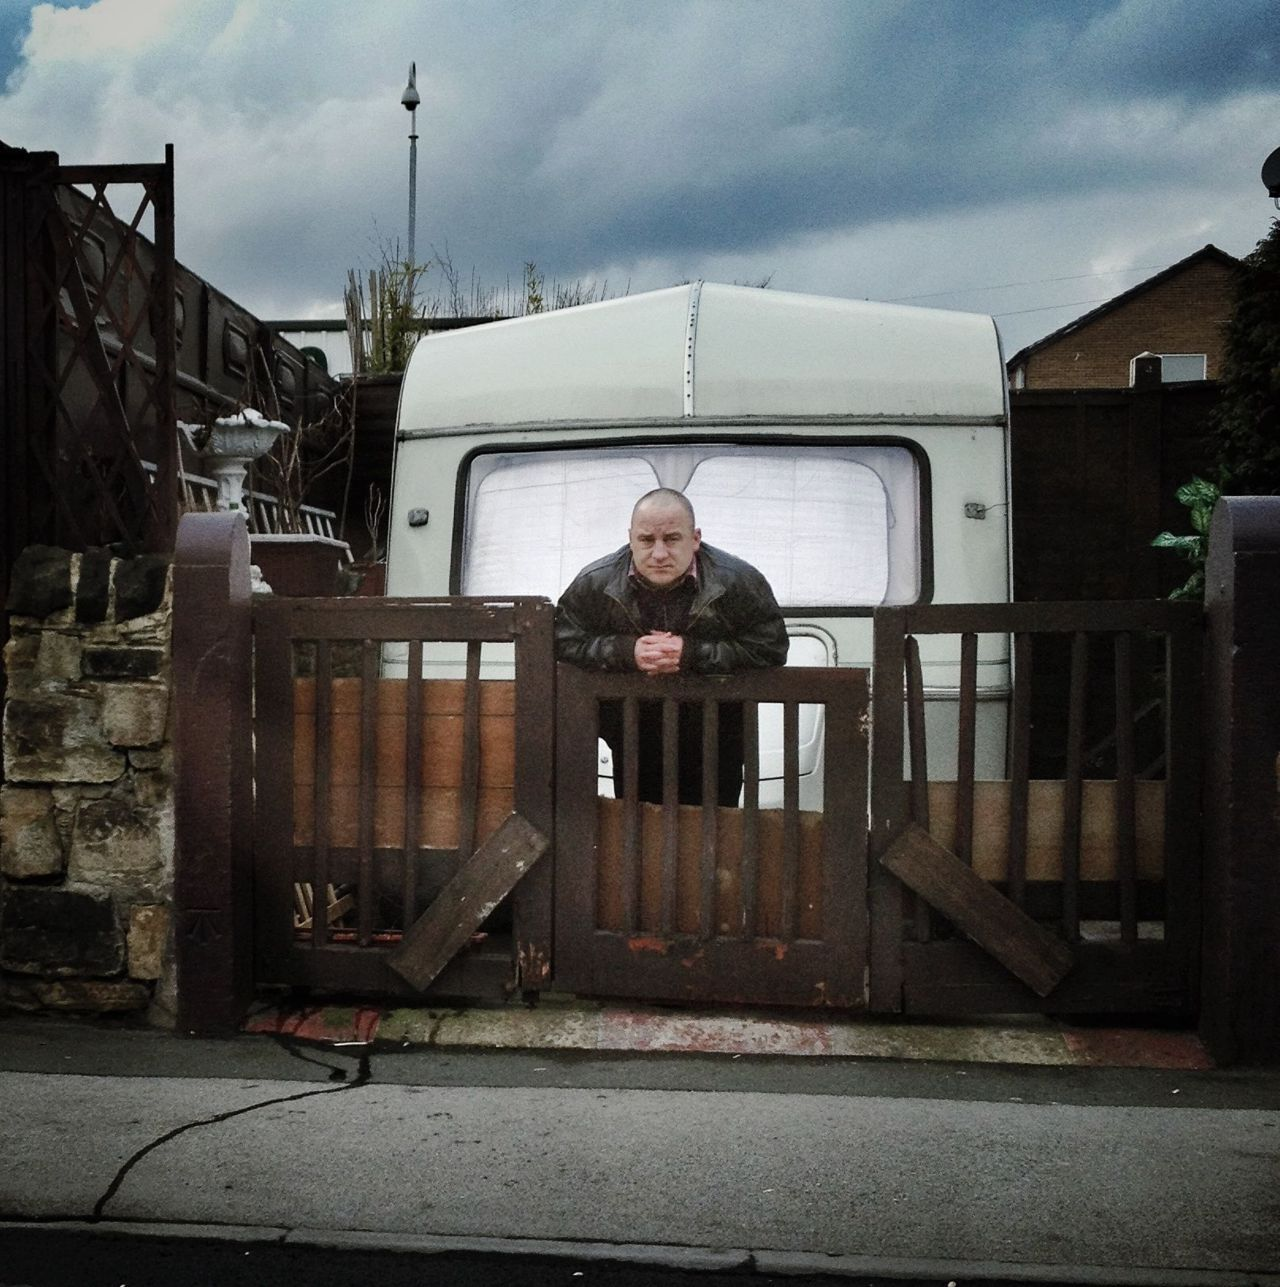 Photo by AMPt member Graham Preston(IG: @grahampreston)Title: An Englishman's HomeFor me, having a camera on my person at all times means that when the opportunity for a photo appears, I can take it - instead of thinking afterwards 'that would have made a nice image, I wish I had my camera'.So here is one of those moments. This bloke didn't look like your typical caravan enthusiast but it was parked outside his small house and he was guarding it. I did not hang around to find out why.I spot the opportunity. Unlock my phone (QuickPix is usually open and ready). Raise and shoot two frames and move on. Later I cropped square in Snapseed, then applied slight drama filter to lift the shadows a bit. Next vintage filter style 3 with texture at zero and saturation boosted.More from Graham Preston on Instagram